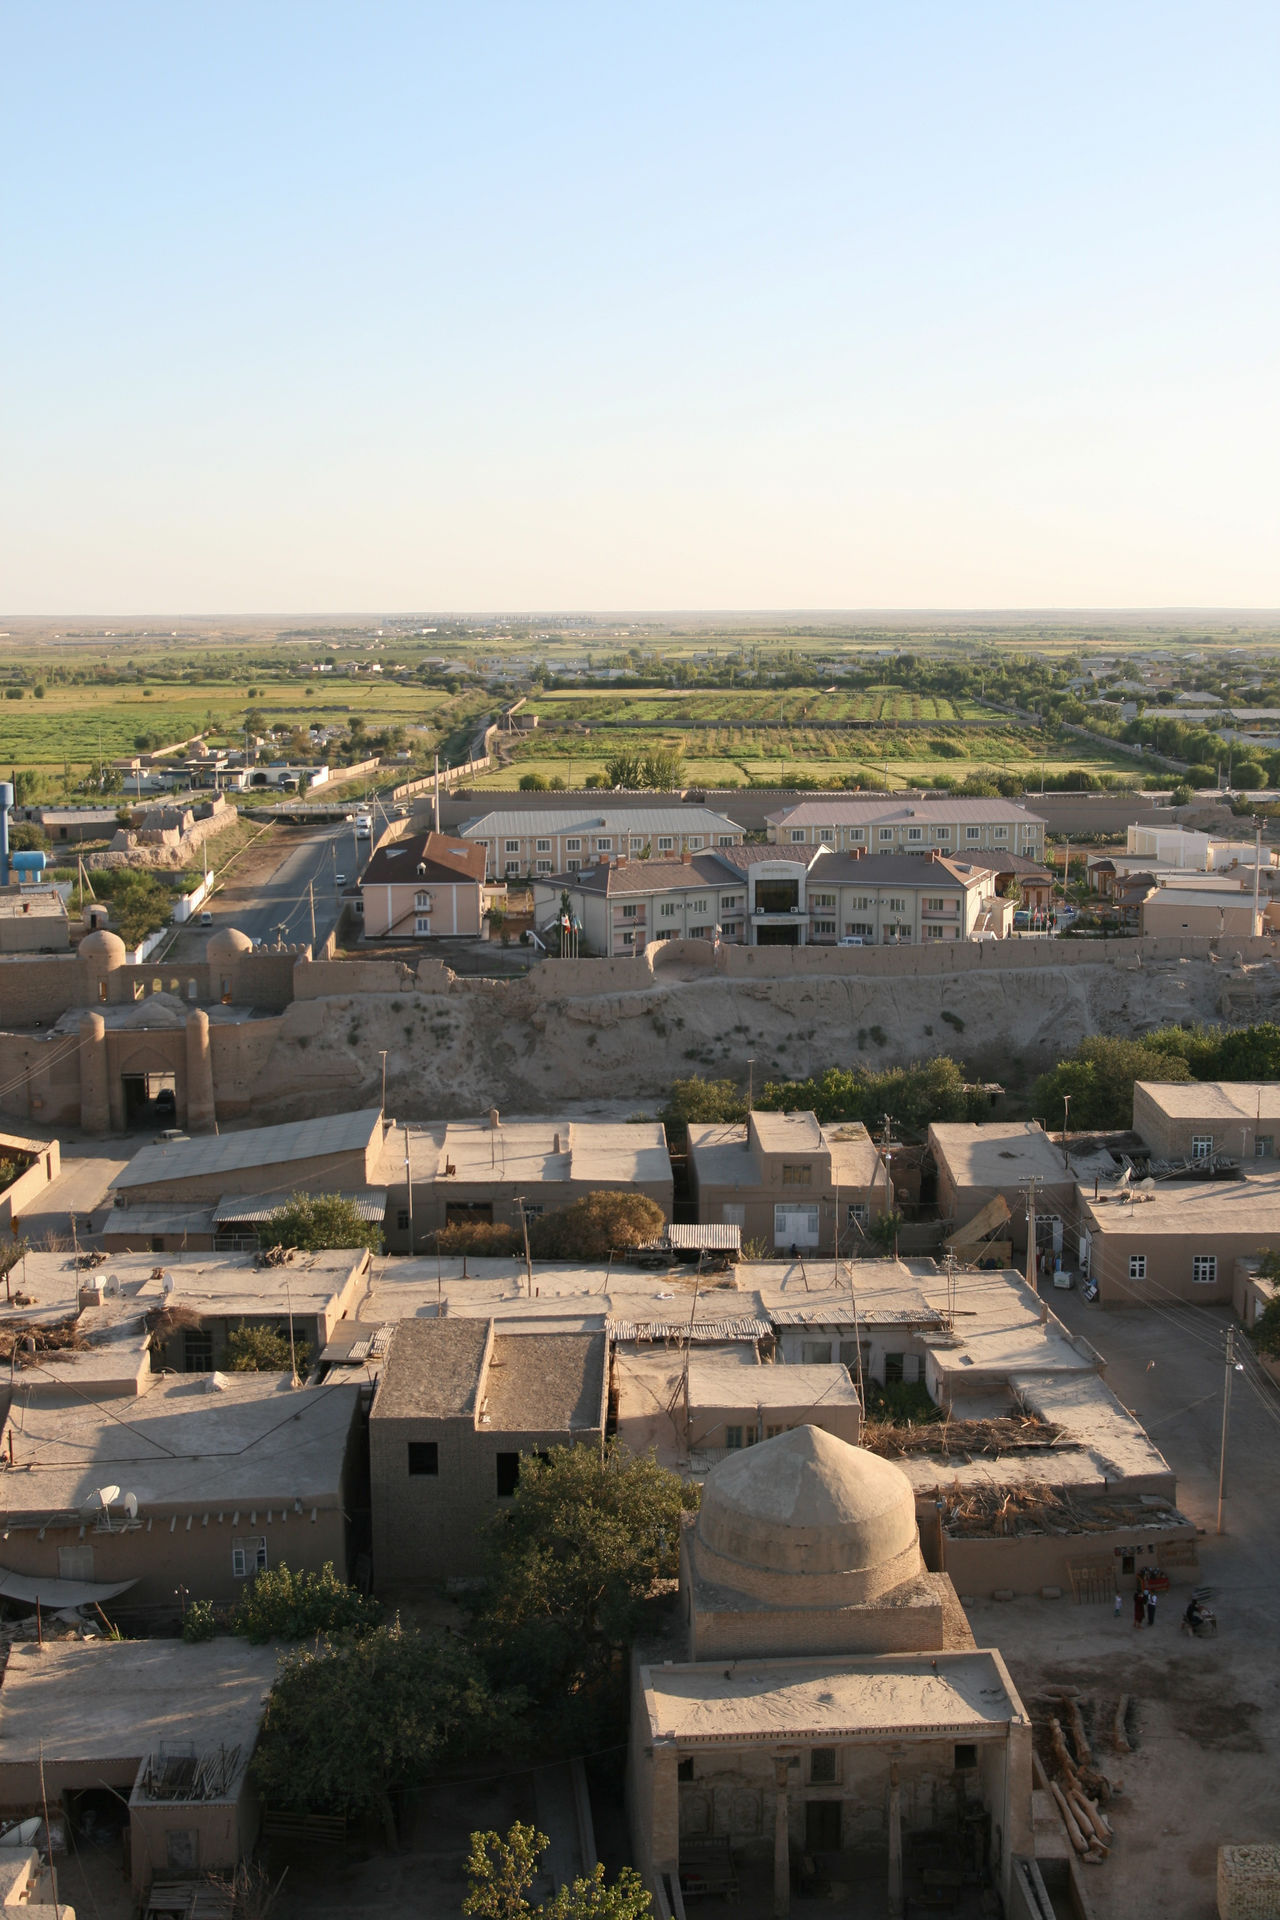 Architecture Building Exterior Built Structure Clear Sky Community Culture Damaged Day Defensive Wall Dome Fields High Angle View House Human Settlement Islamic Architecture Khiva Log Old Outer Wall Perspective Residential District Roof Silk Road Uzbekistan